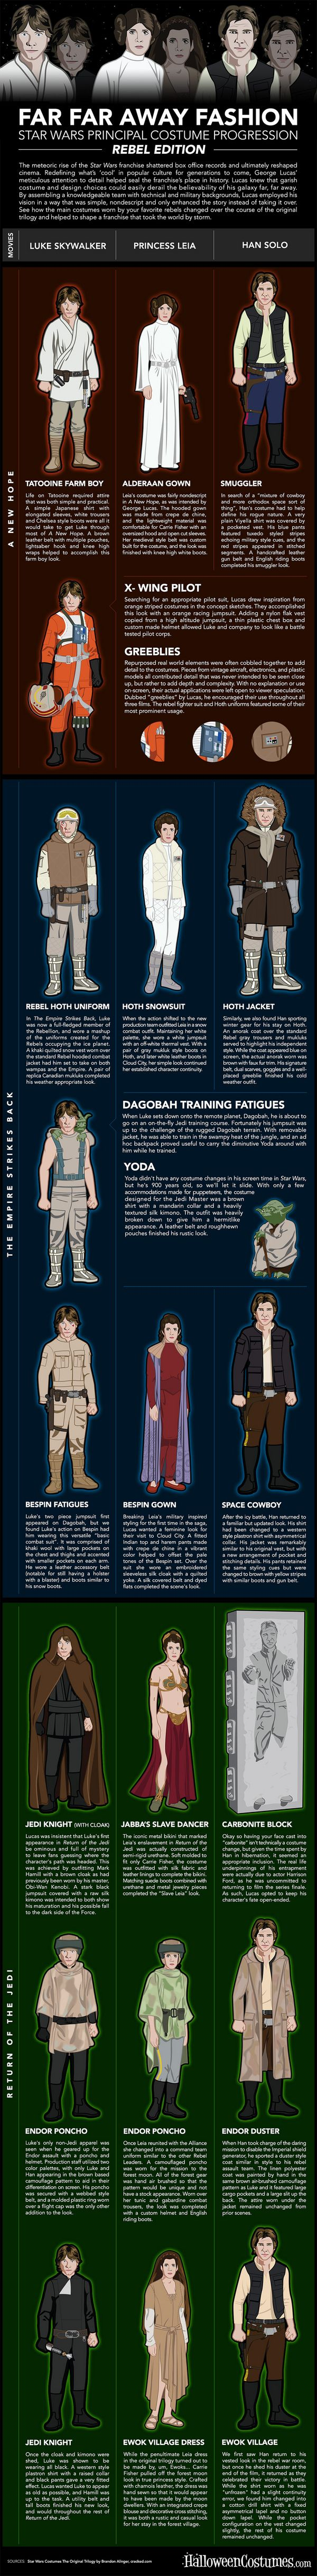 Star Wars Costumes Infographic